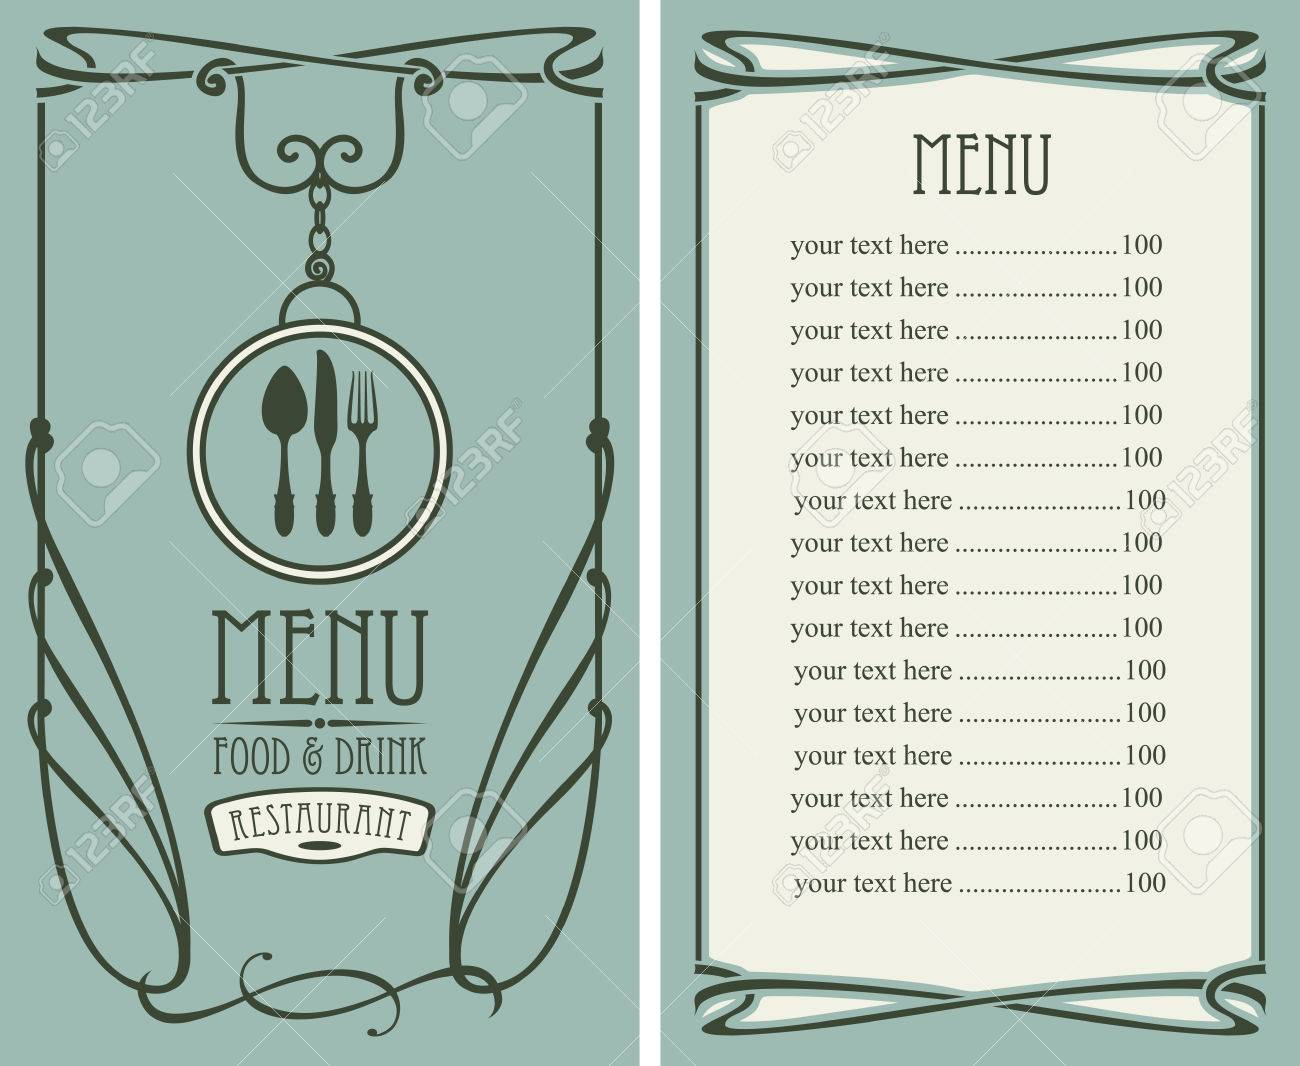 Template Vector Menu For Restaurant With Price List, Flatware ...